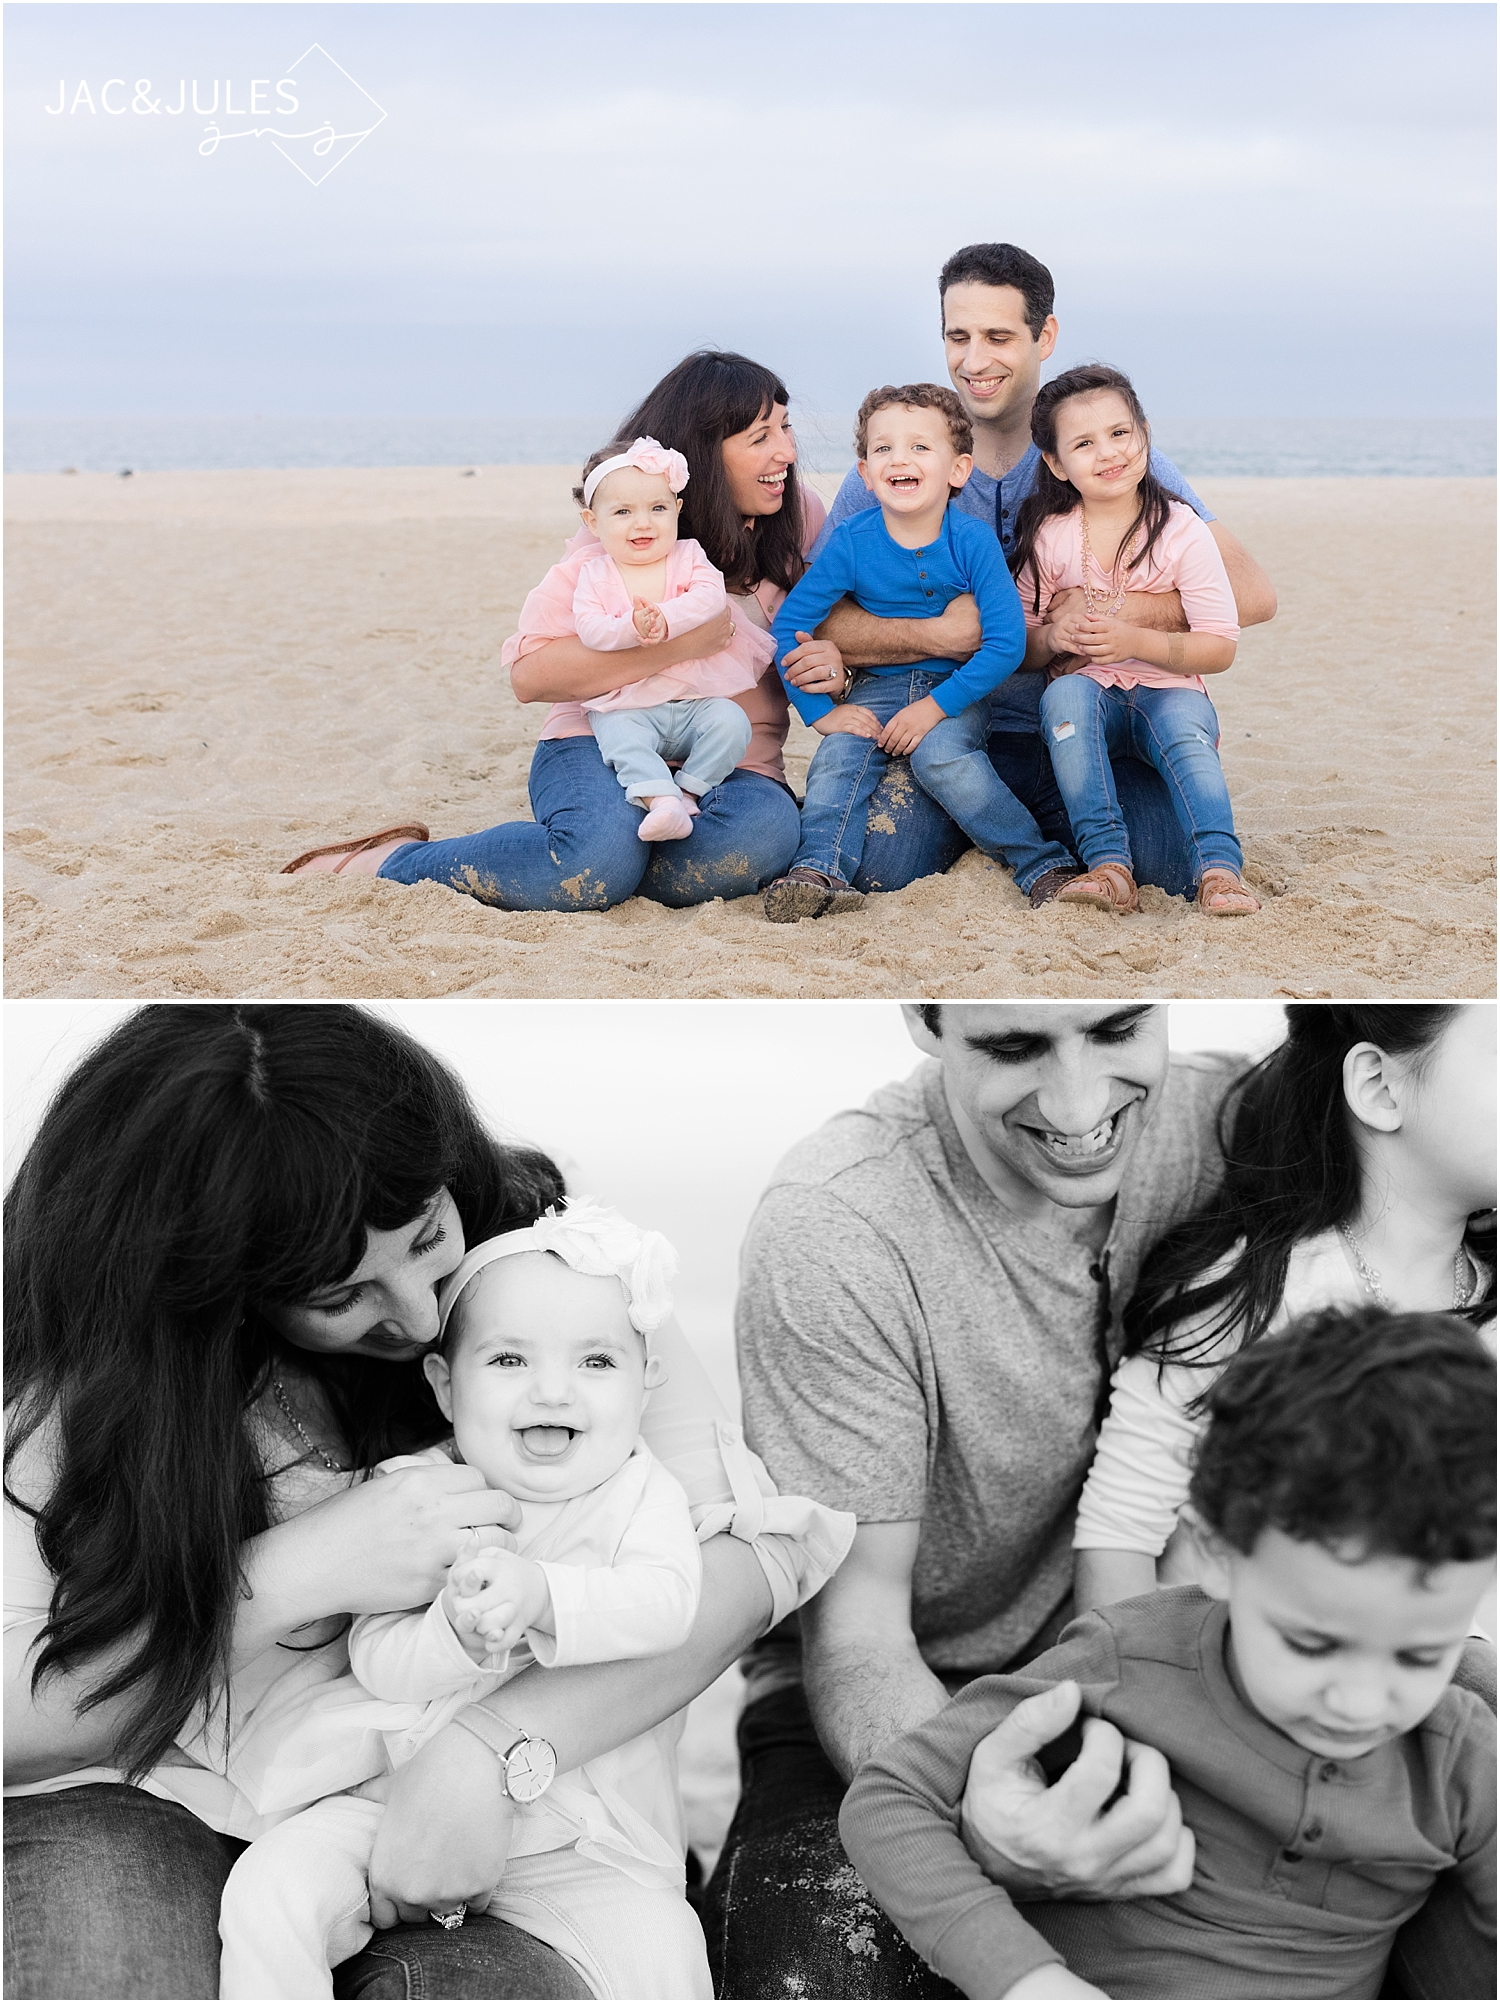 jacnjules photograph beautiful family photos in point pleasant nj